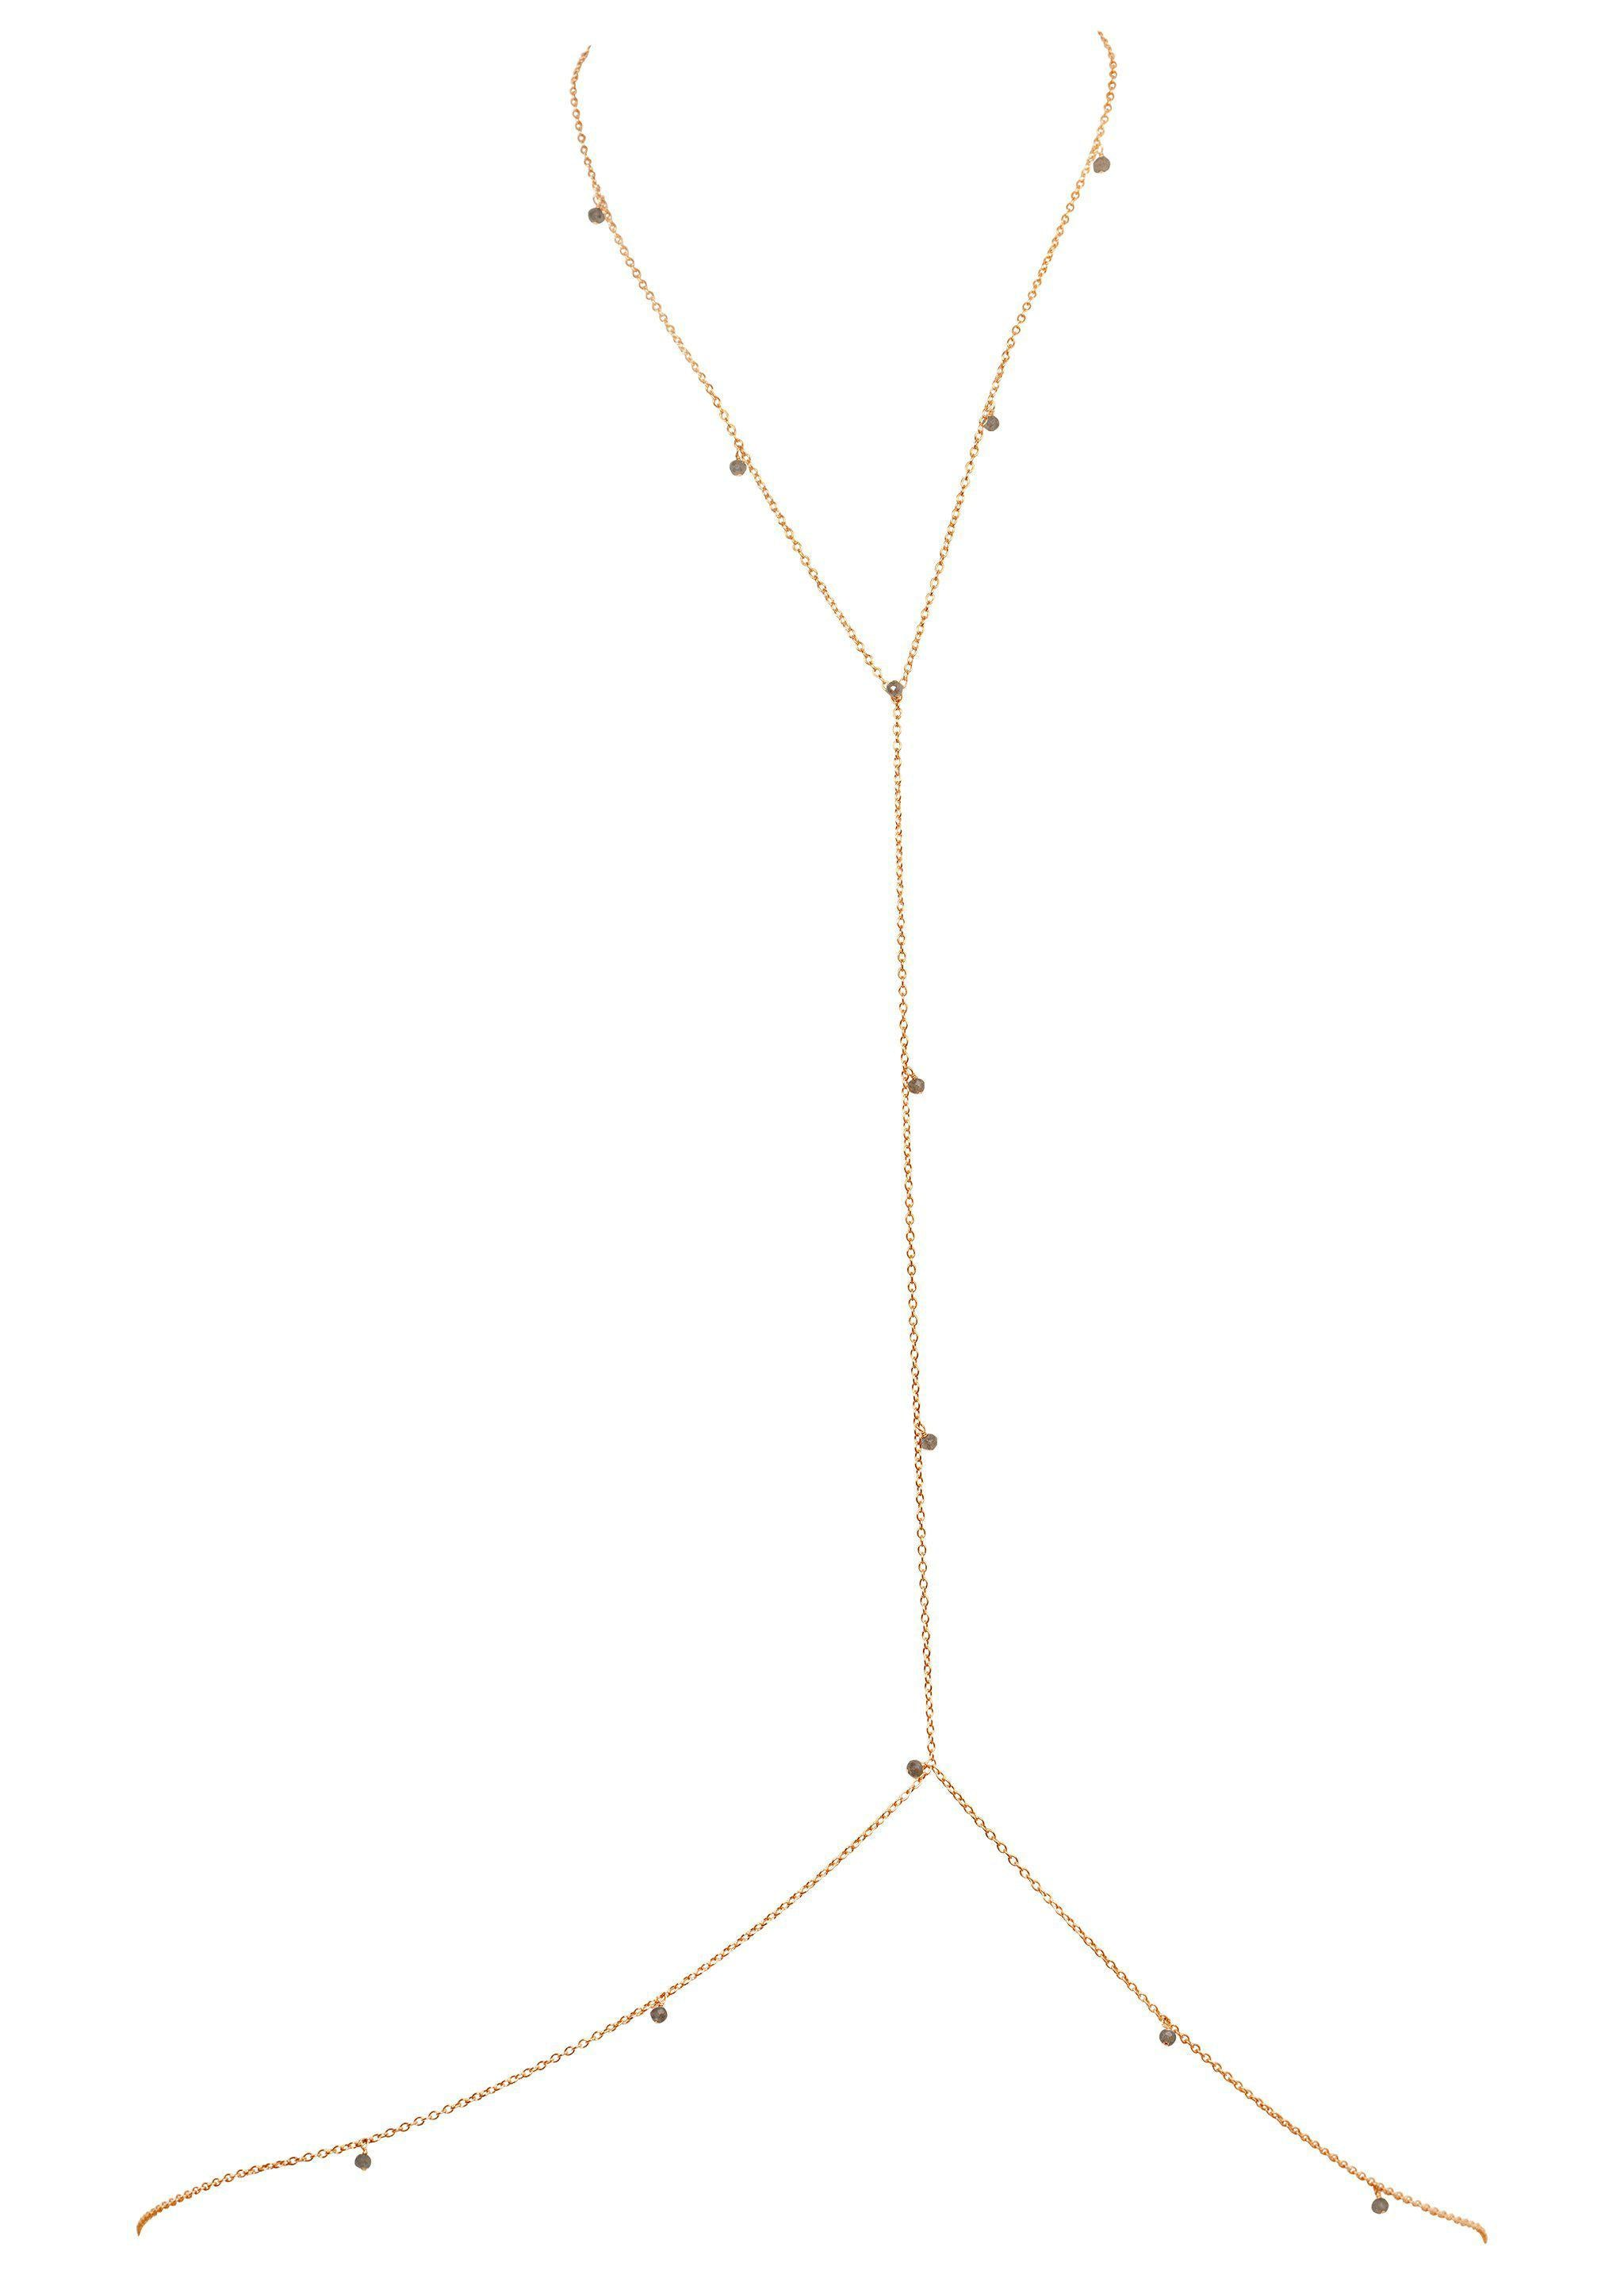 Gemstone Vine Bodychain - Goldish